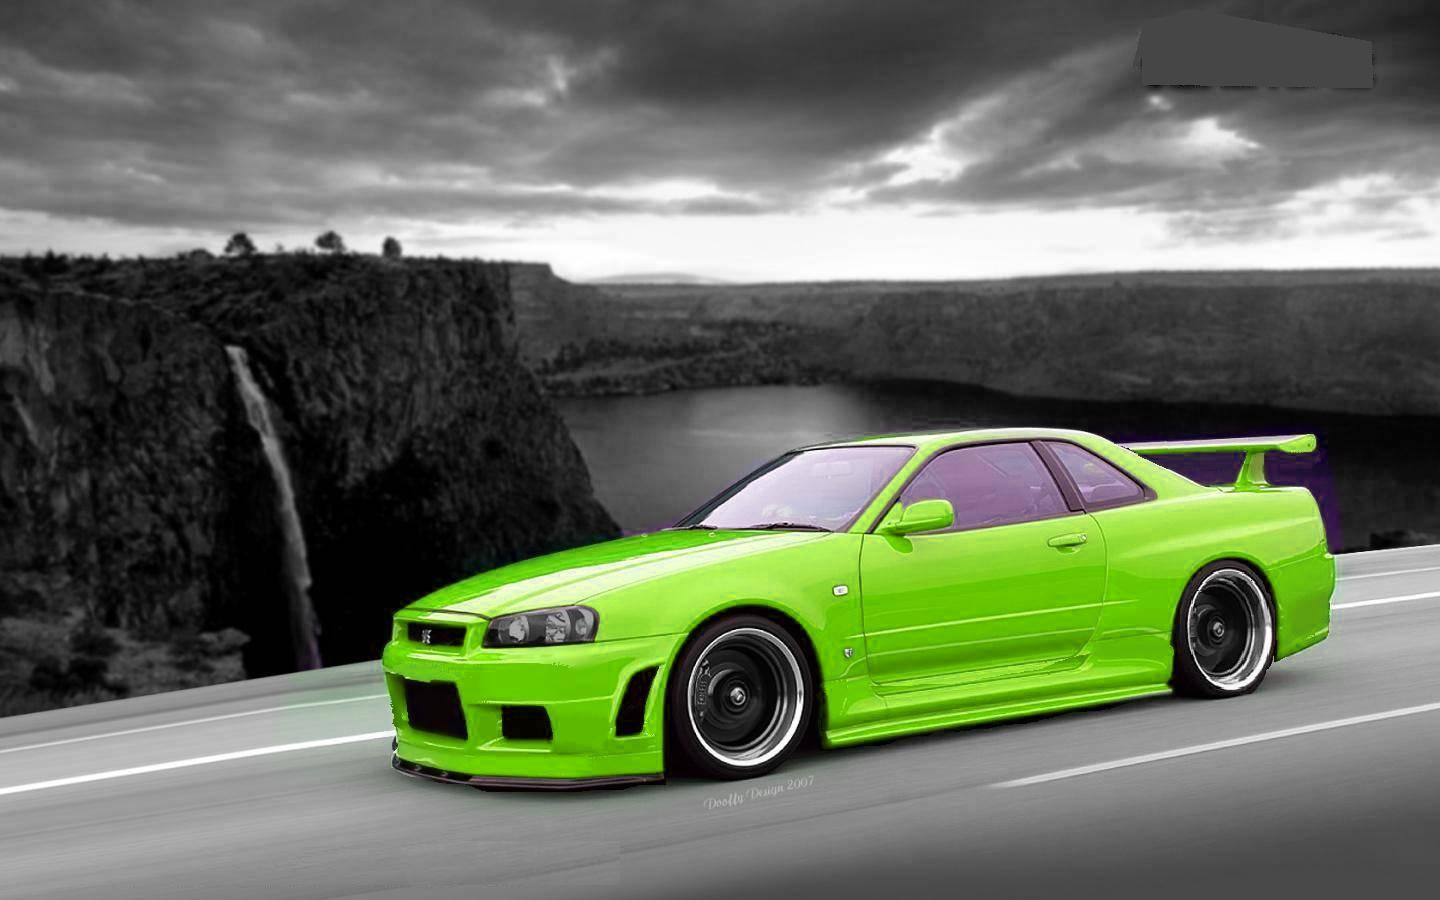 nissan skyline gt-r r34 wallpapers - wallpaper cave